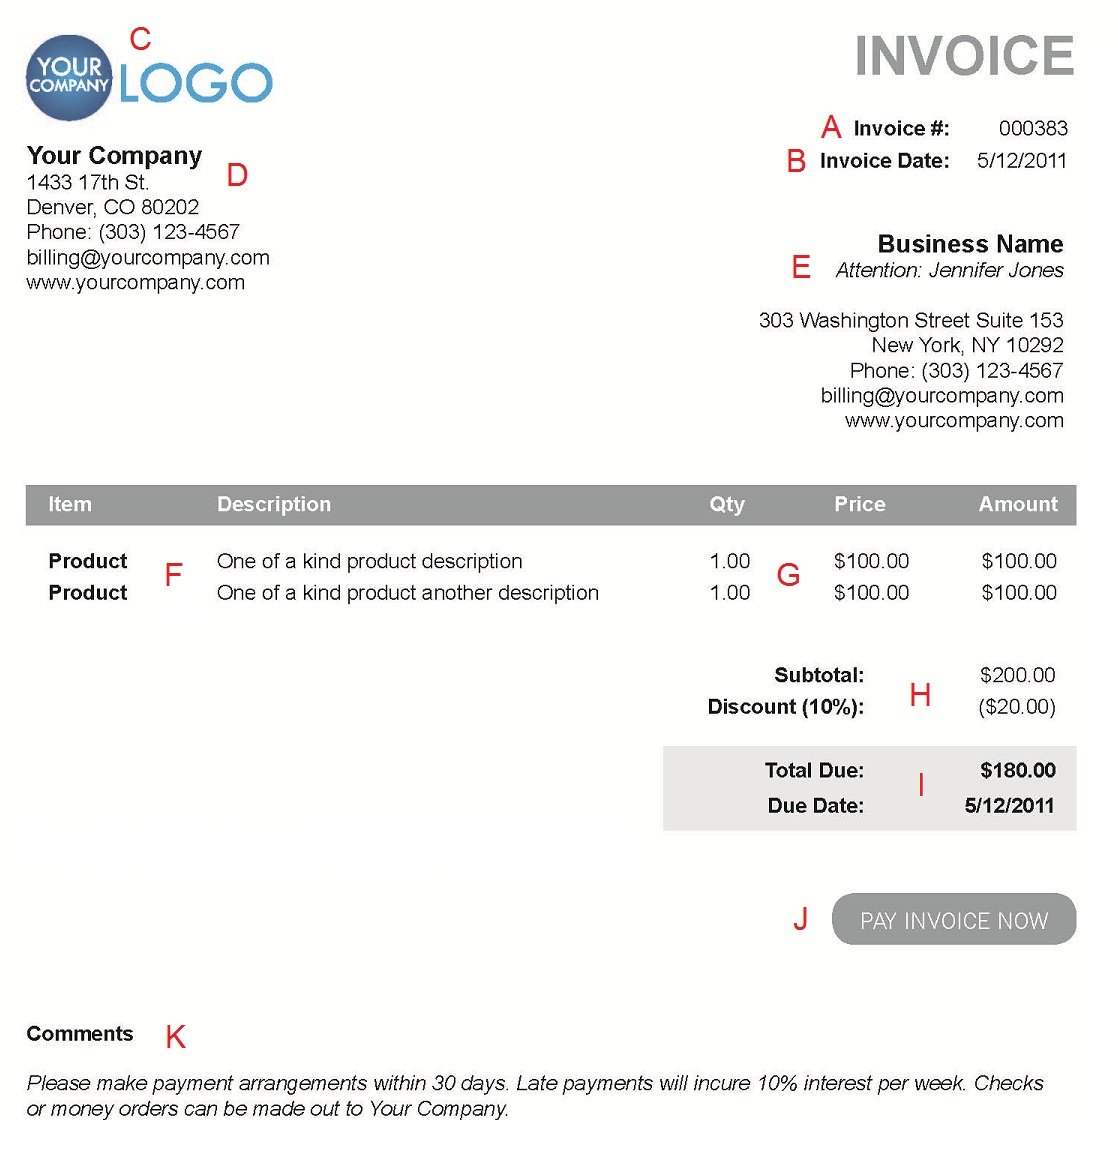 Totallocalus  Marvellous The  Different Sections Of An Electronic Payment Invoice With Hot A  With Beautiful Create And Invoice Also Audi Invoice Price In Addition Acura Mdx Invoice And Google Docs Templates Invoice As Well As How To Send A Invoice Additionally Template Of Invoice From Paysimplecom With Totallocalus  Hot The  Different Sections Of An Electronic Payment Invoice With Beautiful A  And Marvellous Create And Invoice Also Audi Invoice Price In Addition Acura Mdx Invoice From Paysimplecom